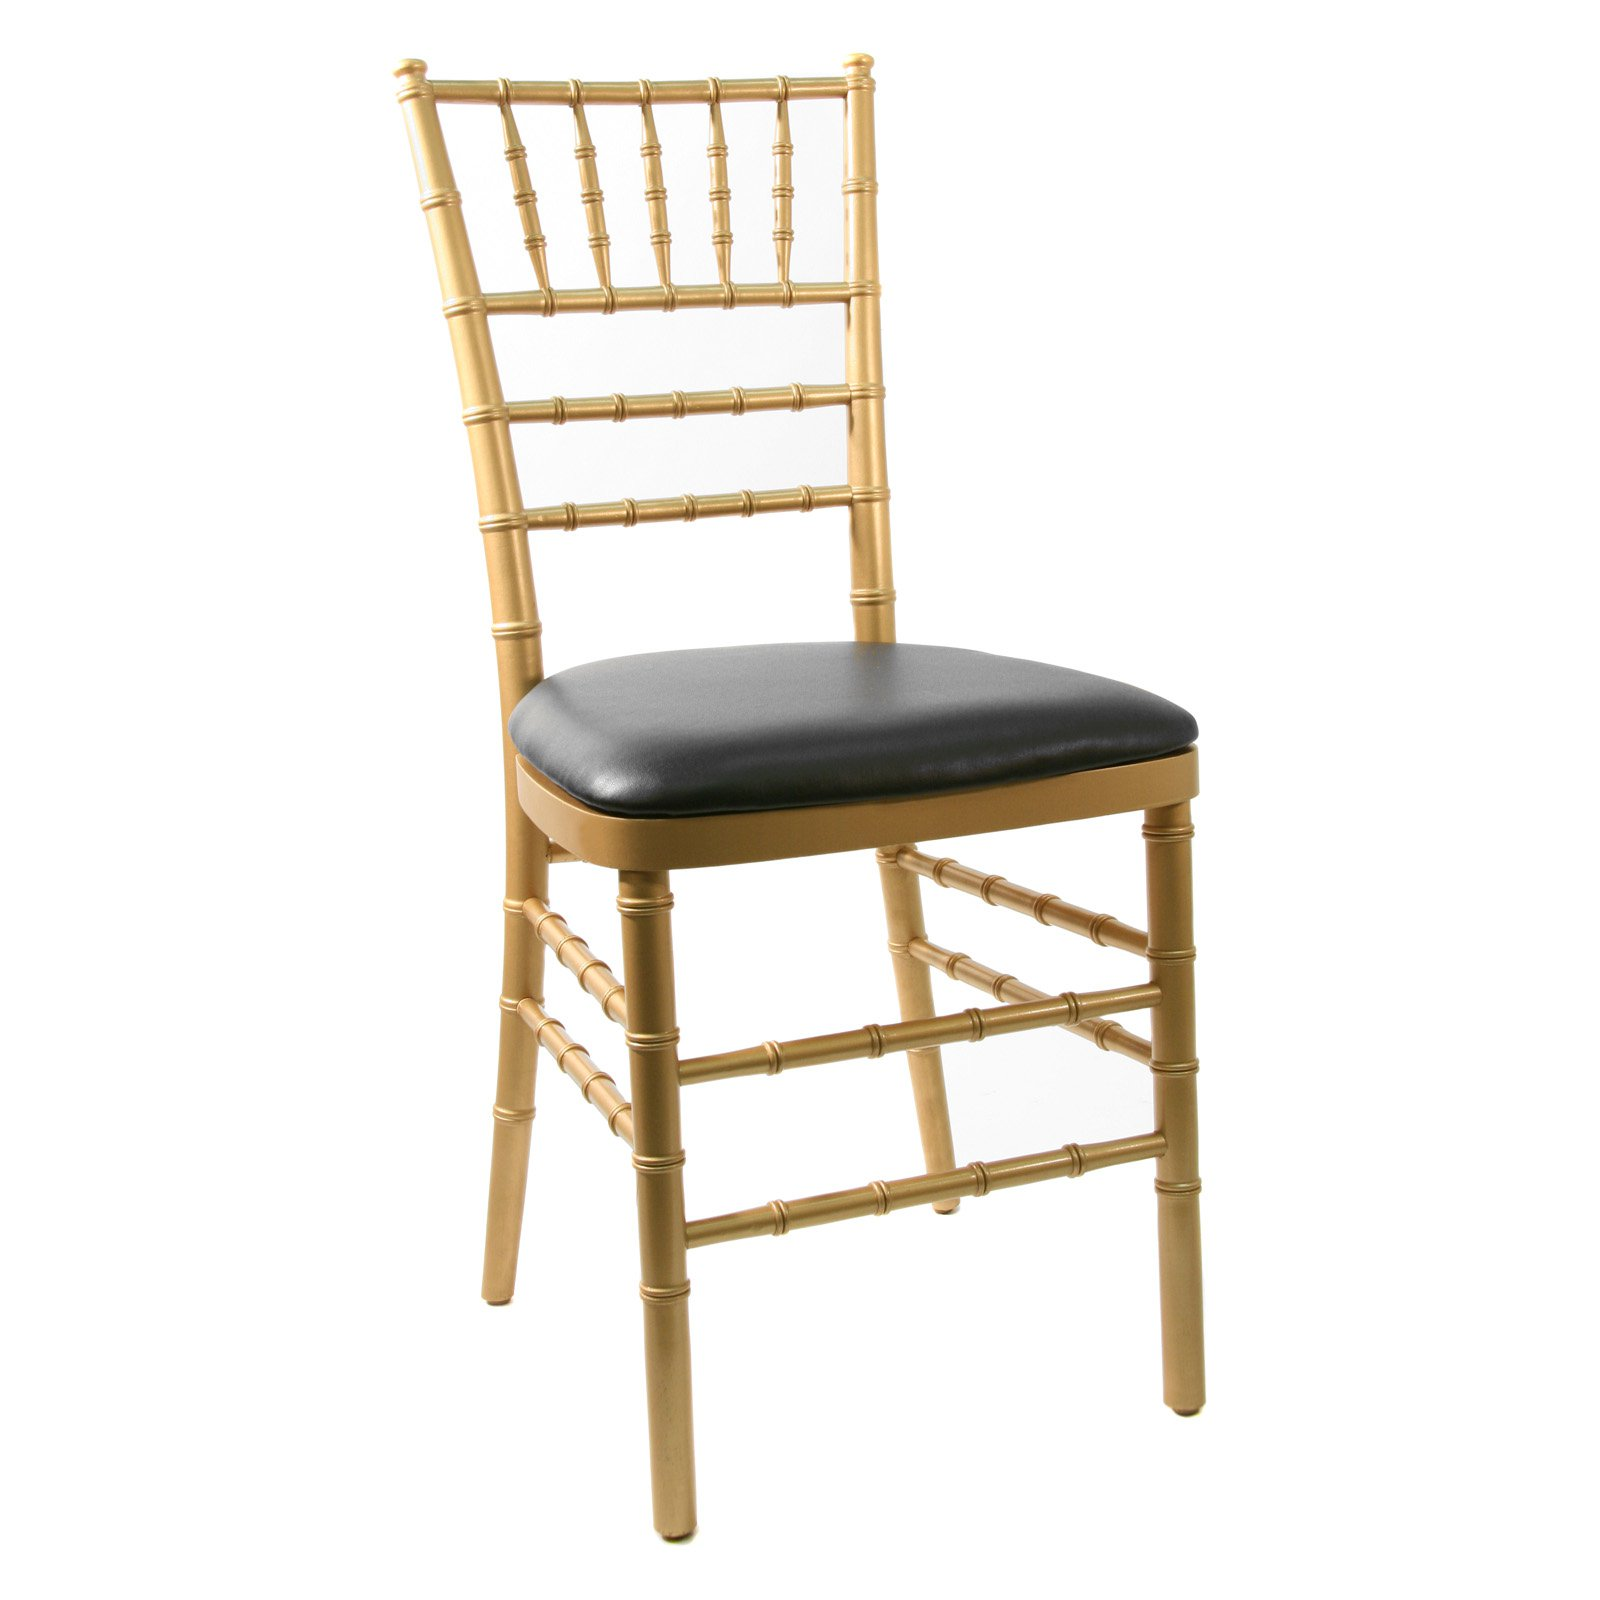 Commercial Seating Products Chiavari Panel Outdoor Cushion